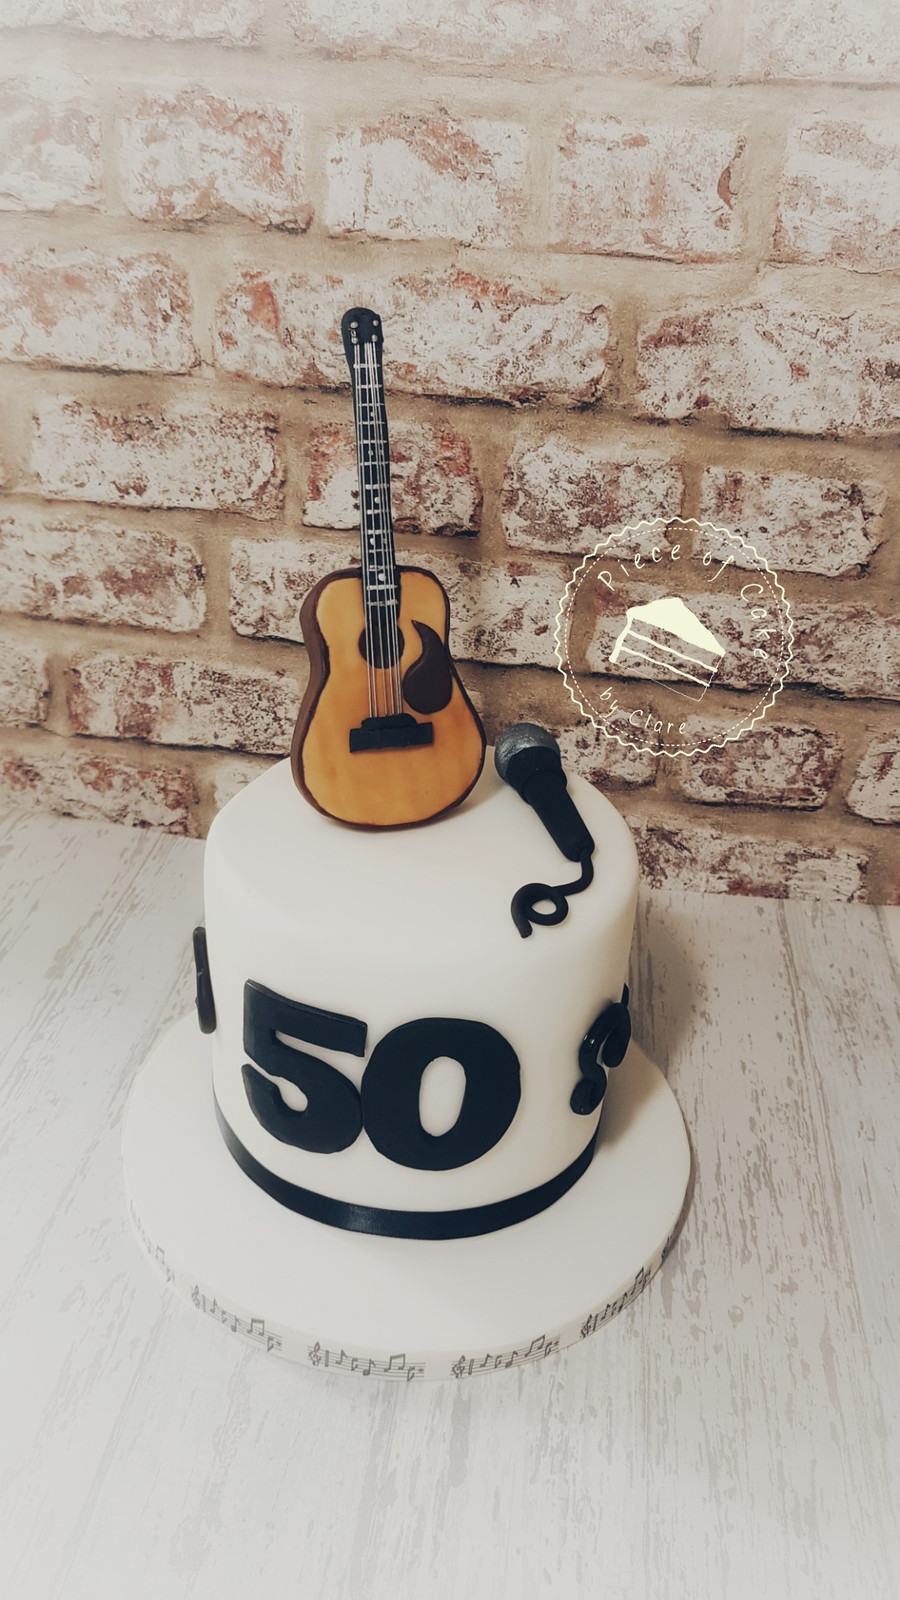 Guitar And Microphone Toppers On A 50th Birthday Cake For Him